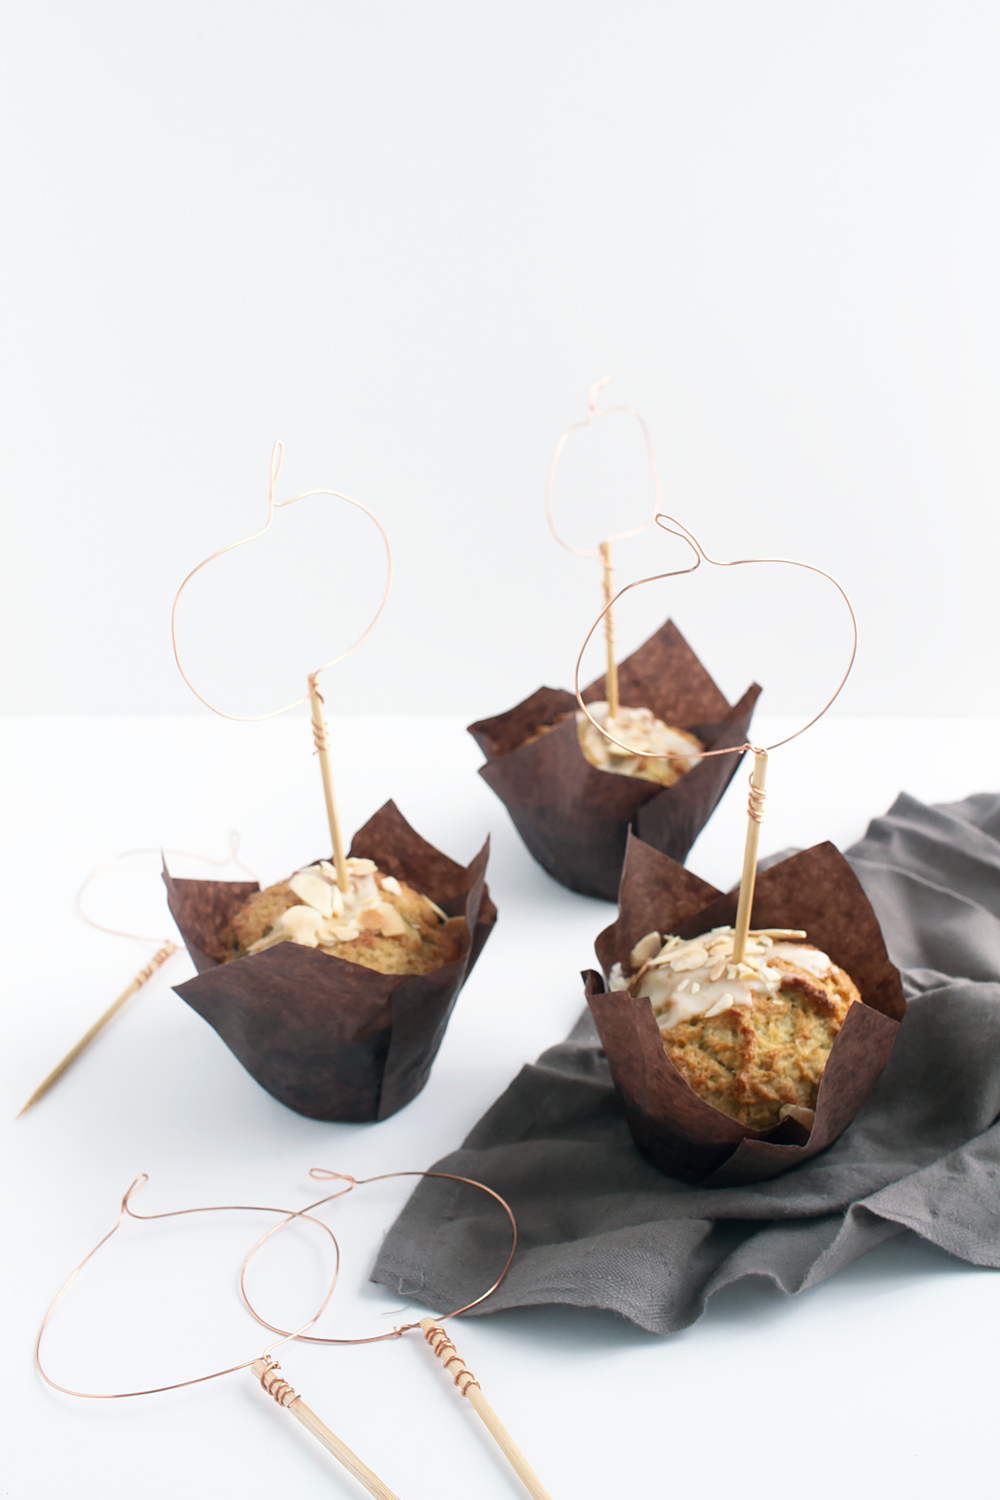 These DIY Wire Pumpkin Cupcake Toppers come together fast in just 4 steps with 2 materials, so you can get back to what's important: eating cupcakes.